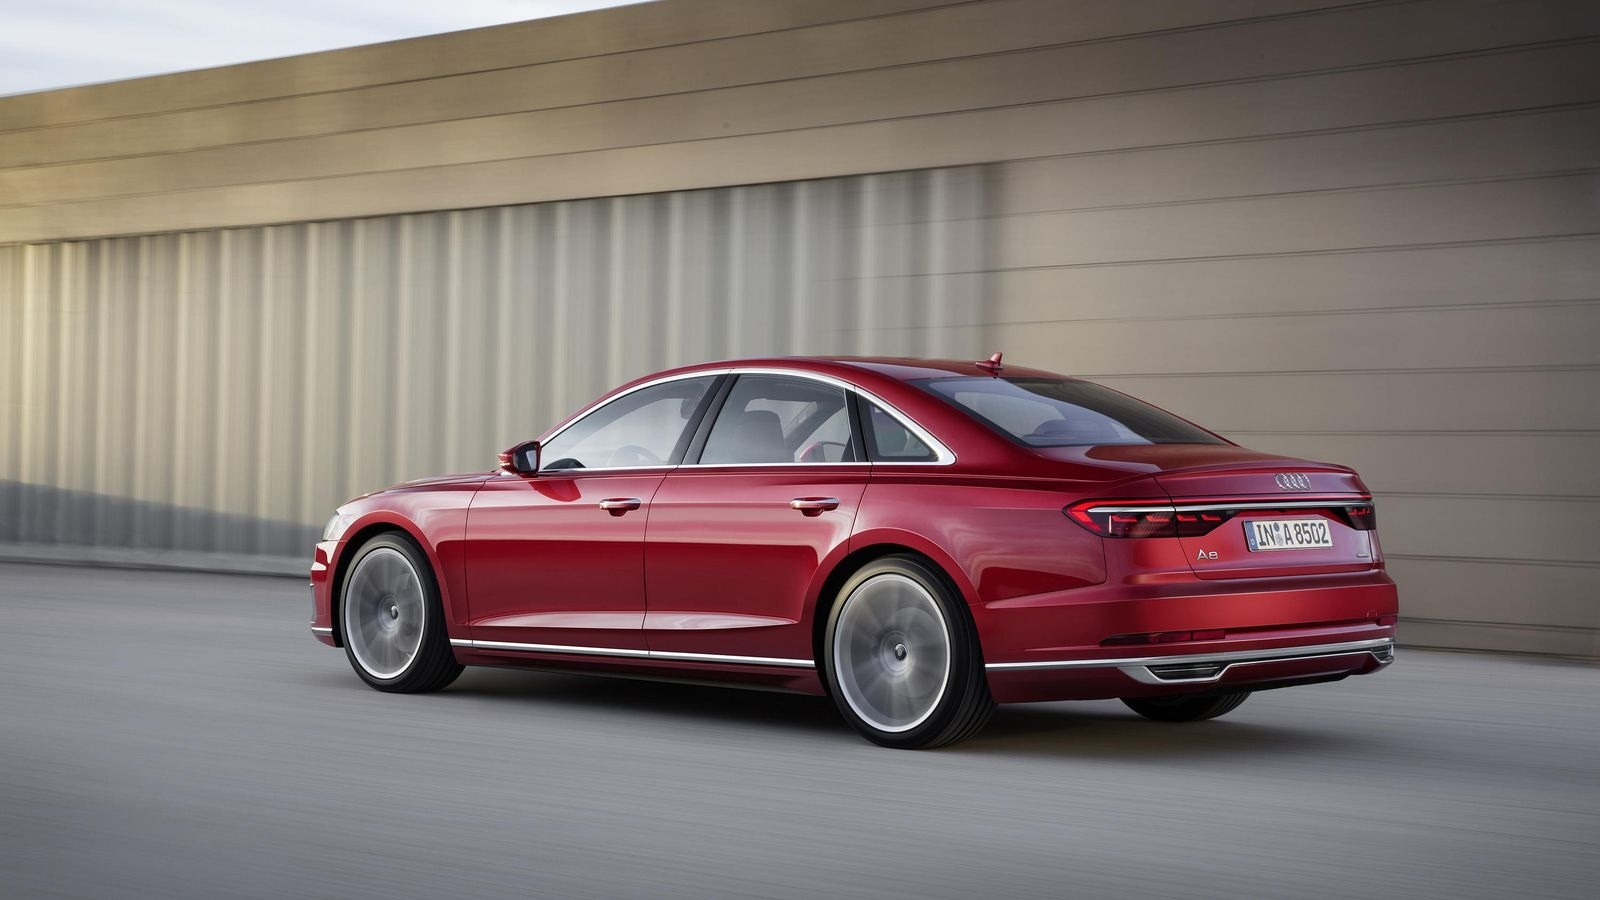 85 The 2020 Audi A8 Review and Release date